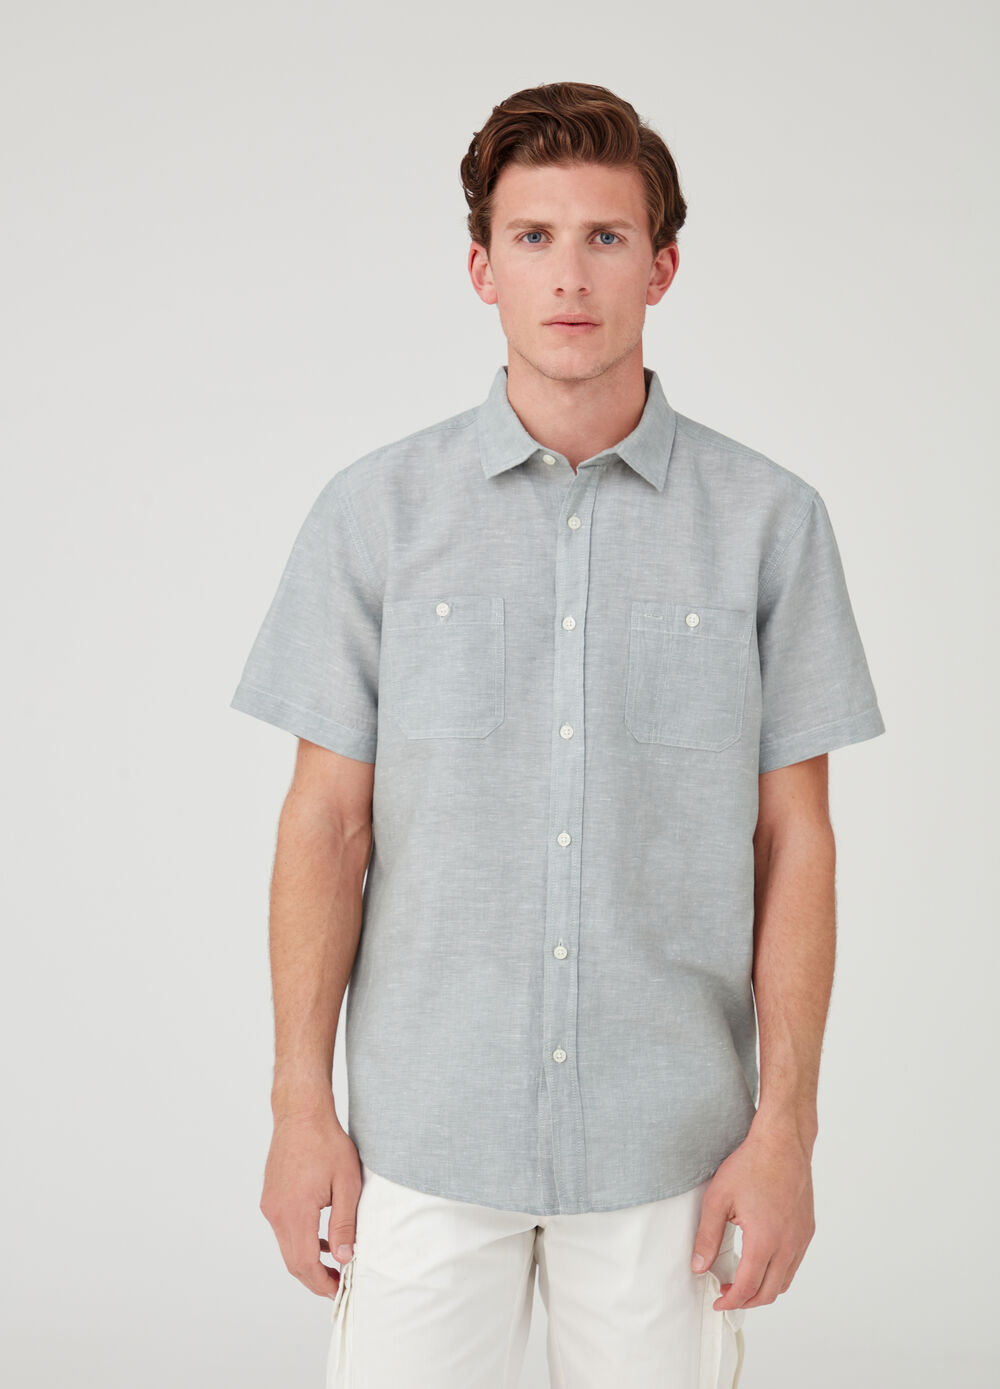 Mélange shirt with short sleeves and pockets